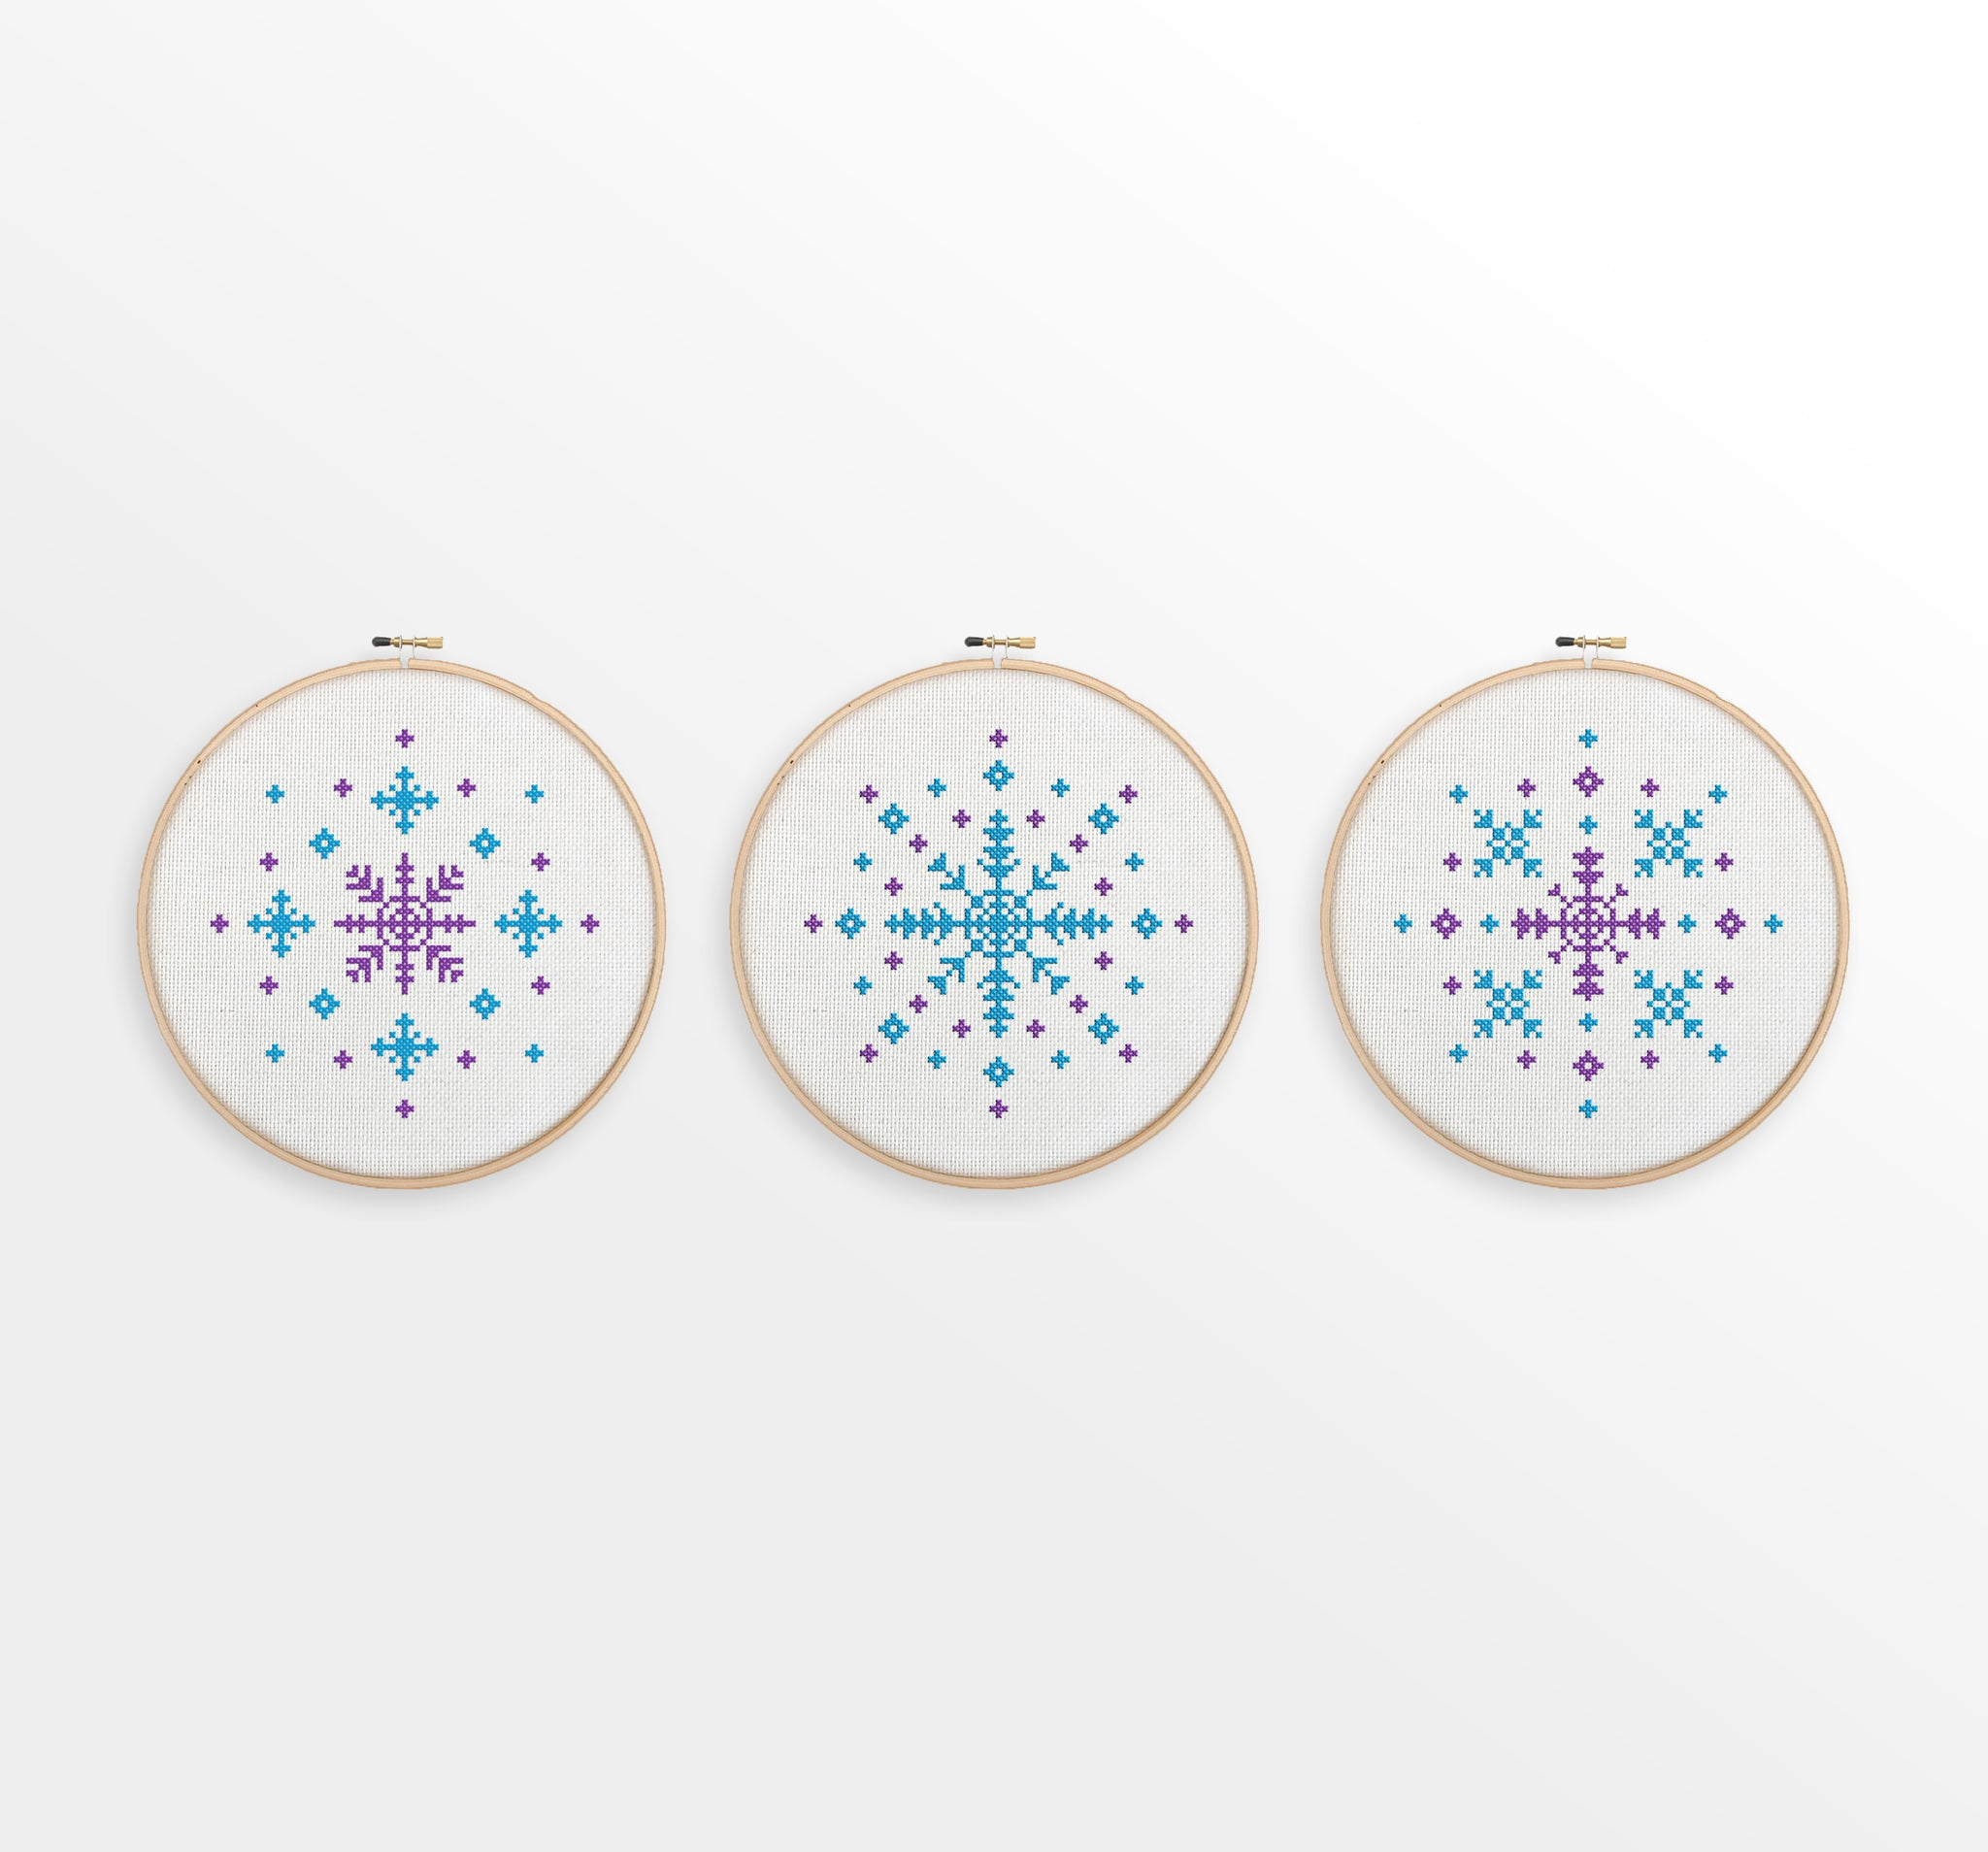 The Snowflake Collection - Set of 3 Snowflake Cross Stitch Patterns